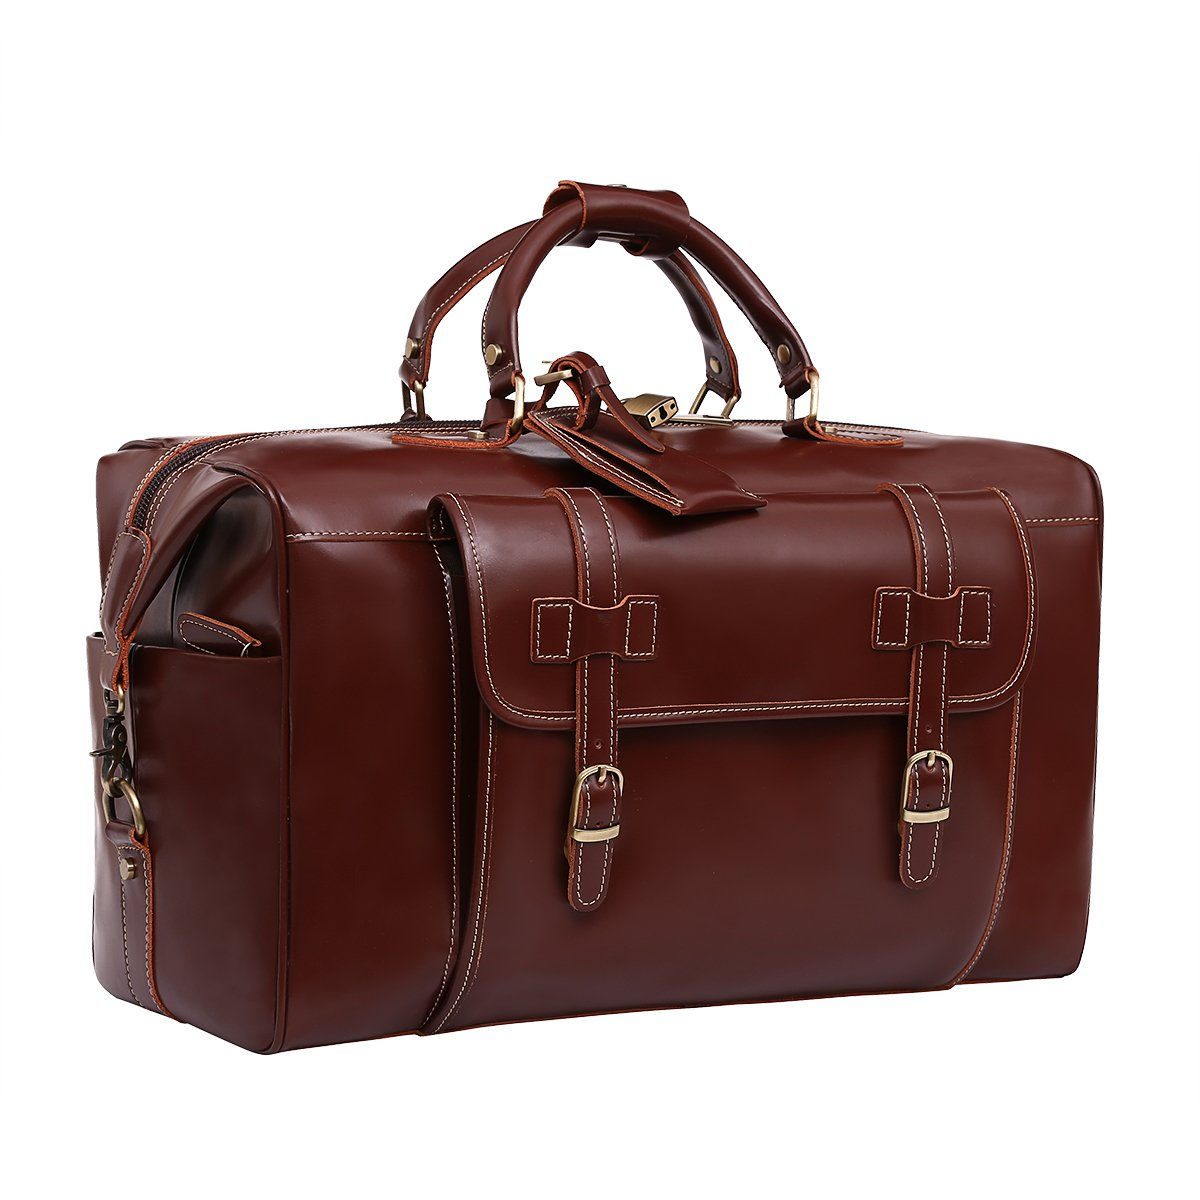 Leathario Mens Genuine Leather Overnight Travel Duffle Weekend Bag Brown by Leathario